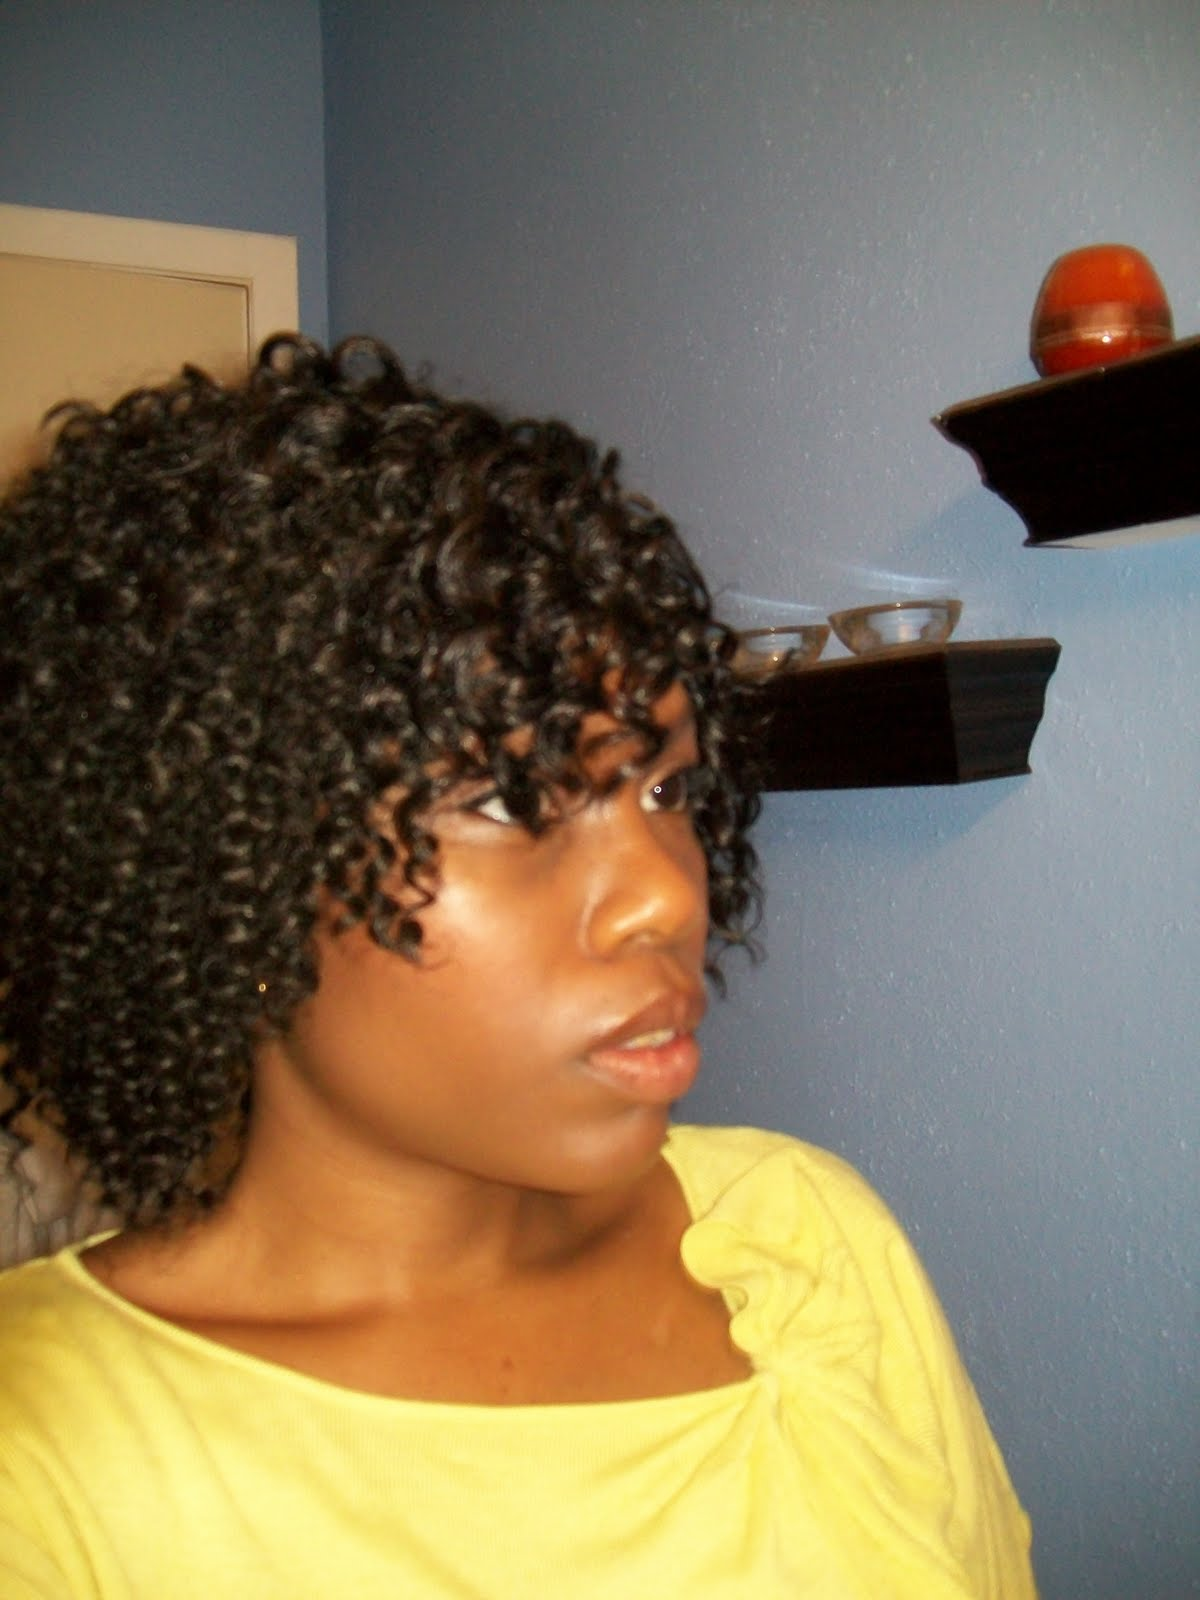 Crochet Braids In Houston Tx : Crochet Braids Houston Salon newhairstylesformen2014.com